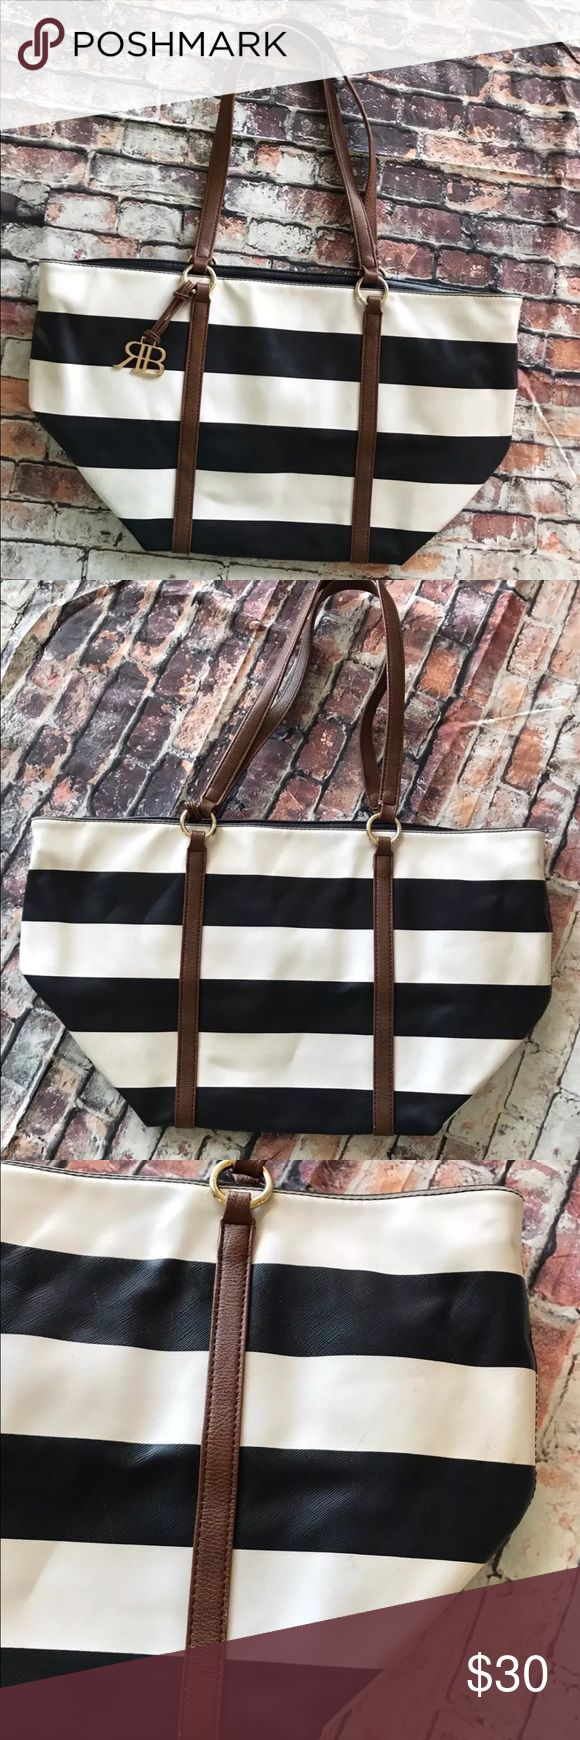 "Banana Republic Tote Bag Shopper Striped Nautical This Banana Republic tote is a classic....It's beautiful, big, and it definitely makes a statement ! Clean exterior and interior. Very minor wear on bottom. See photos   Width on top 19"", width on bottom 14.5"", length 13.5"". Banana Republic Bags Totes"